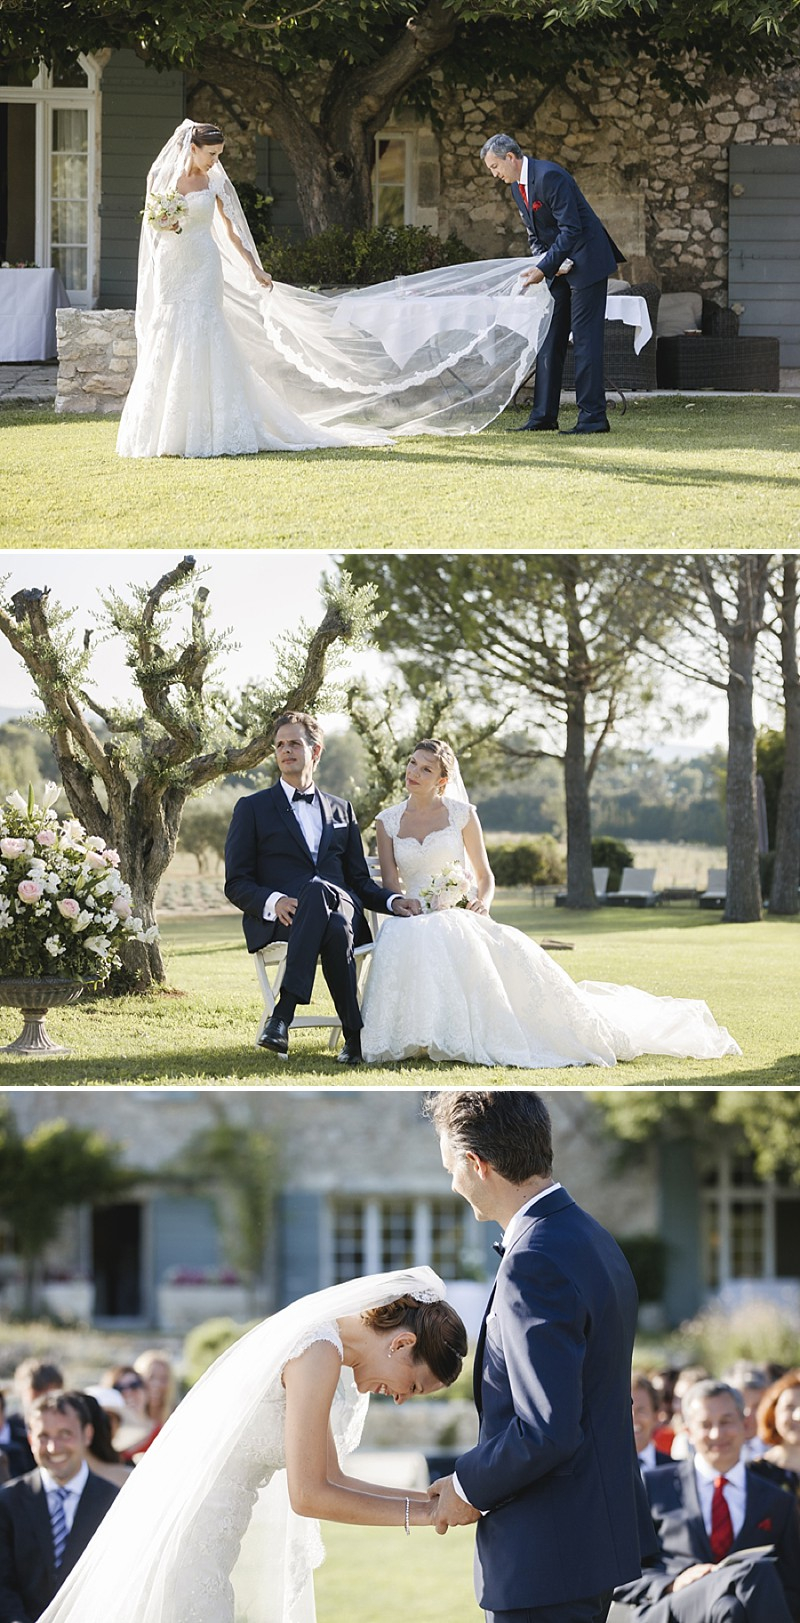 Elegant Wedding At Le Mas De La Rose Provence With Bride In Lace Fishtail Gown By Pronovias And Groom In Navy Armani Tuxedo With Images From Jo Hastings Wedding Photography_0005